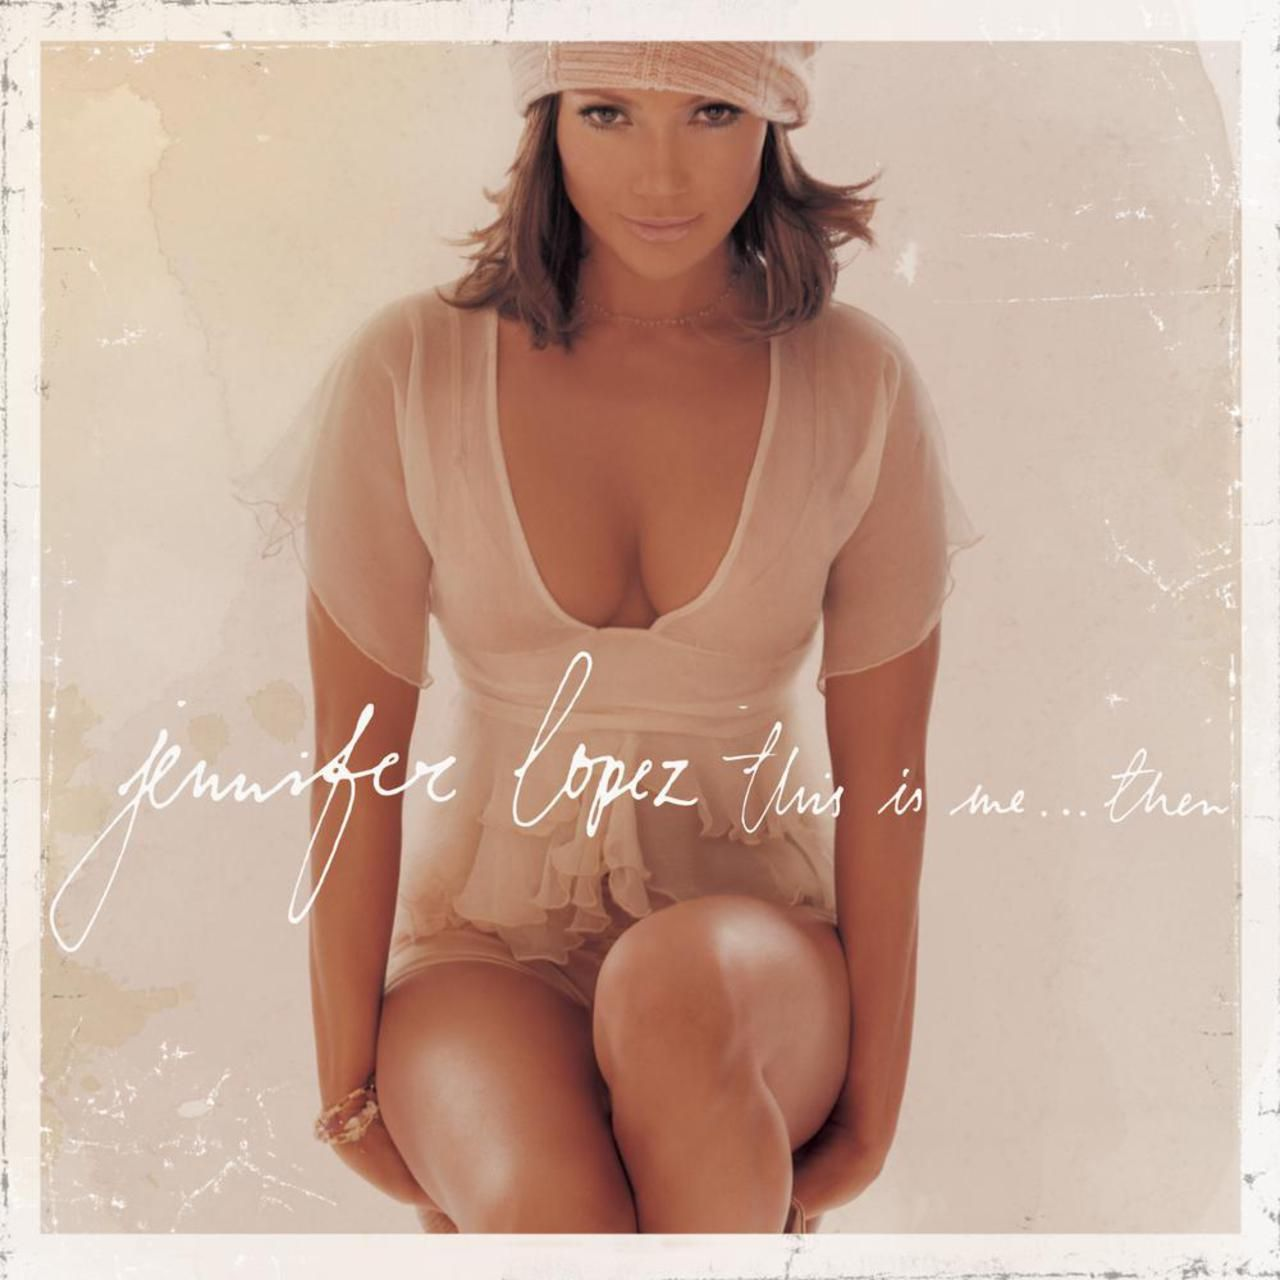 Jennifer Lopez - This Is Me...then album cover